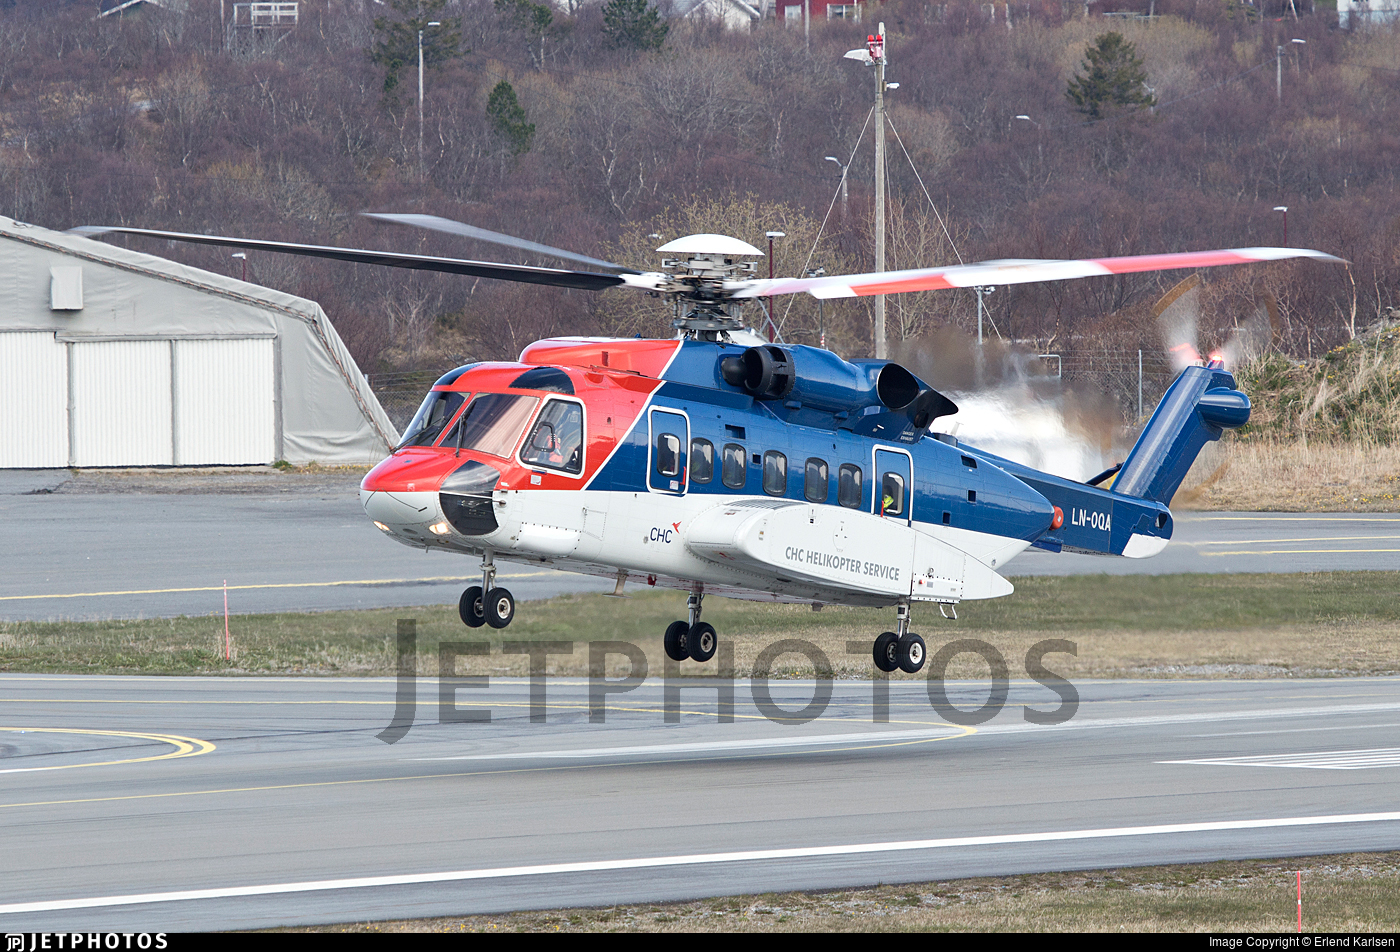 LN-OQA - Sikorsky S-92A Helibus - CHC Helikopter Service